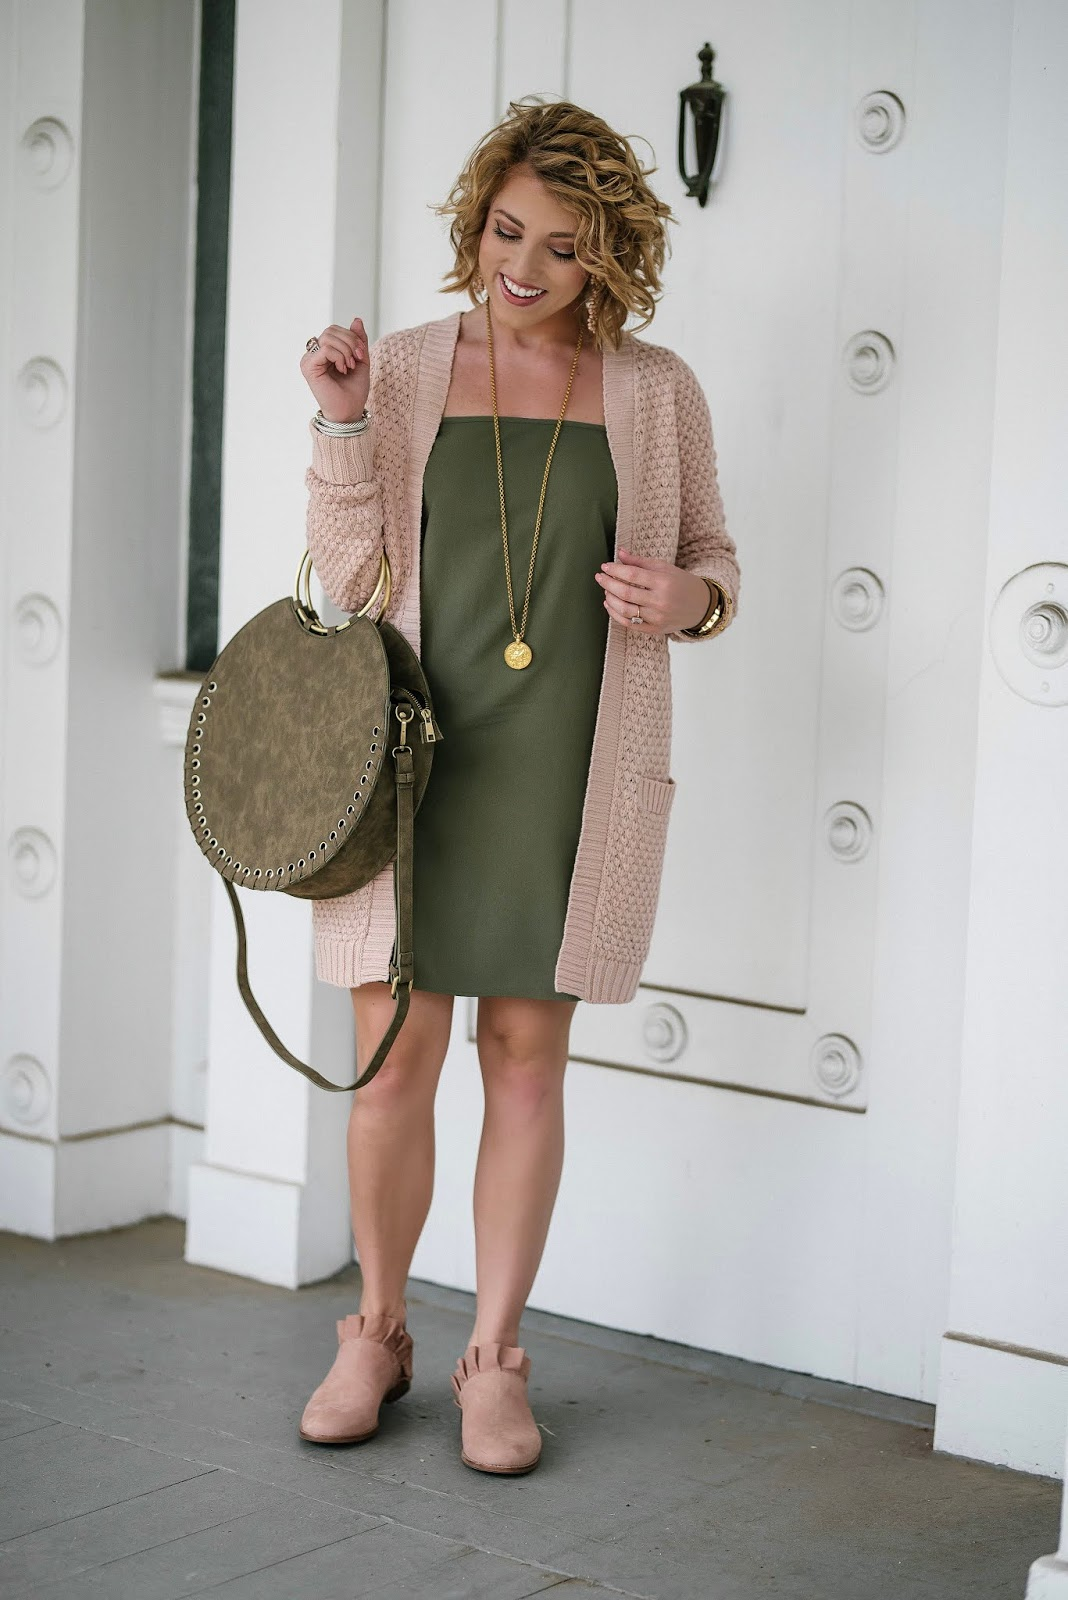 Under $40 Light Pink & $24 Olive Green Dress for Fall - Something Delightful Blog